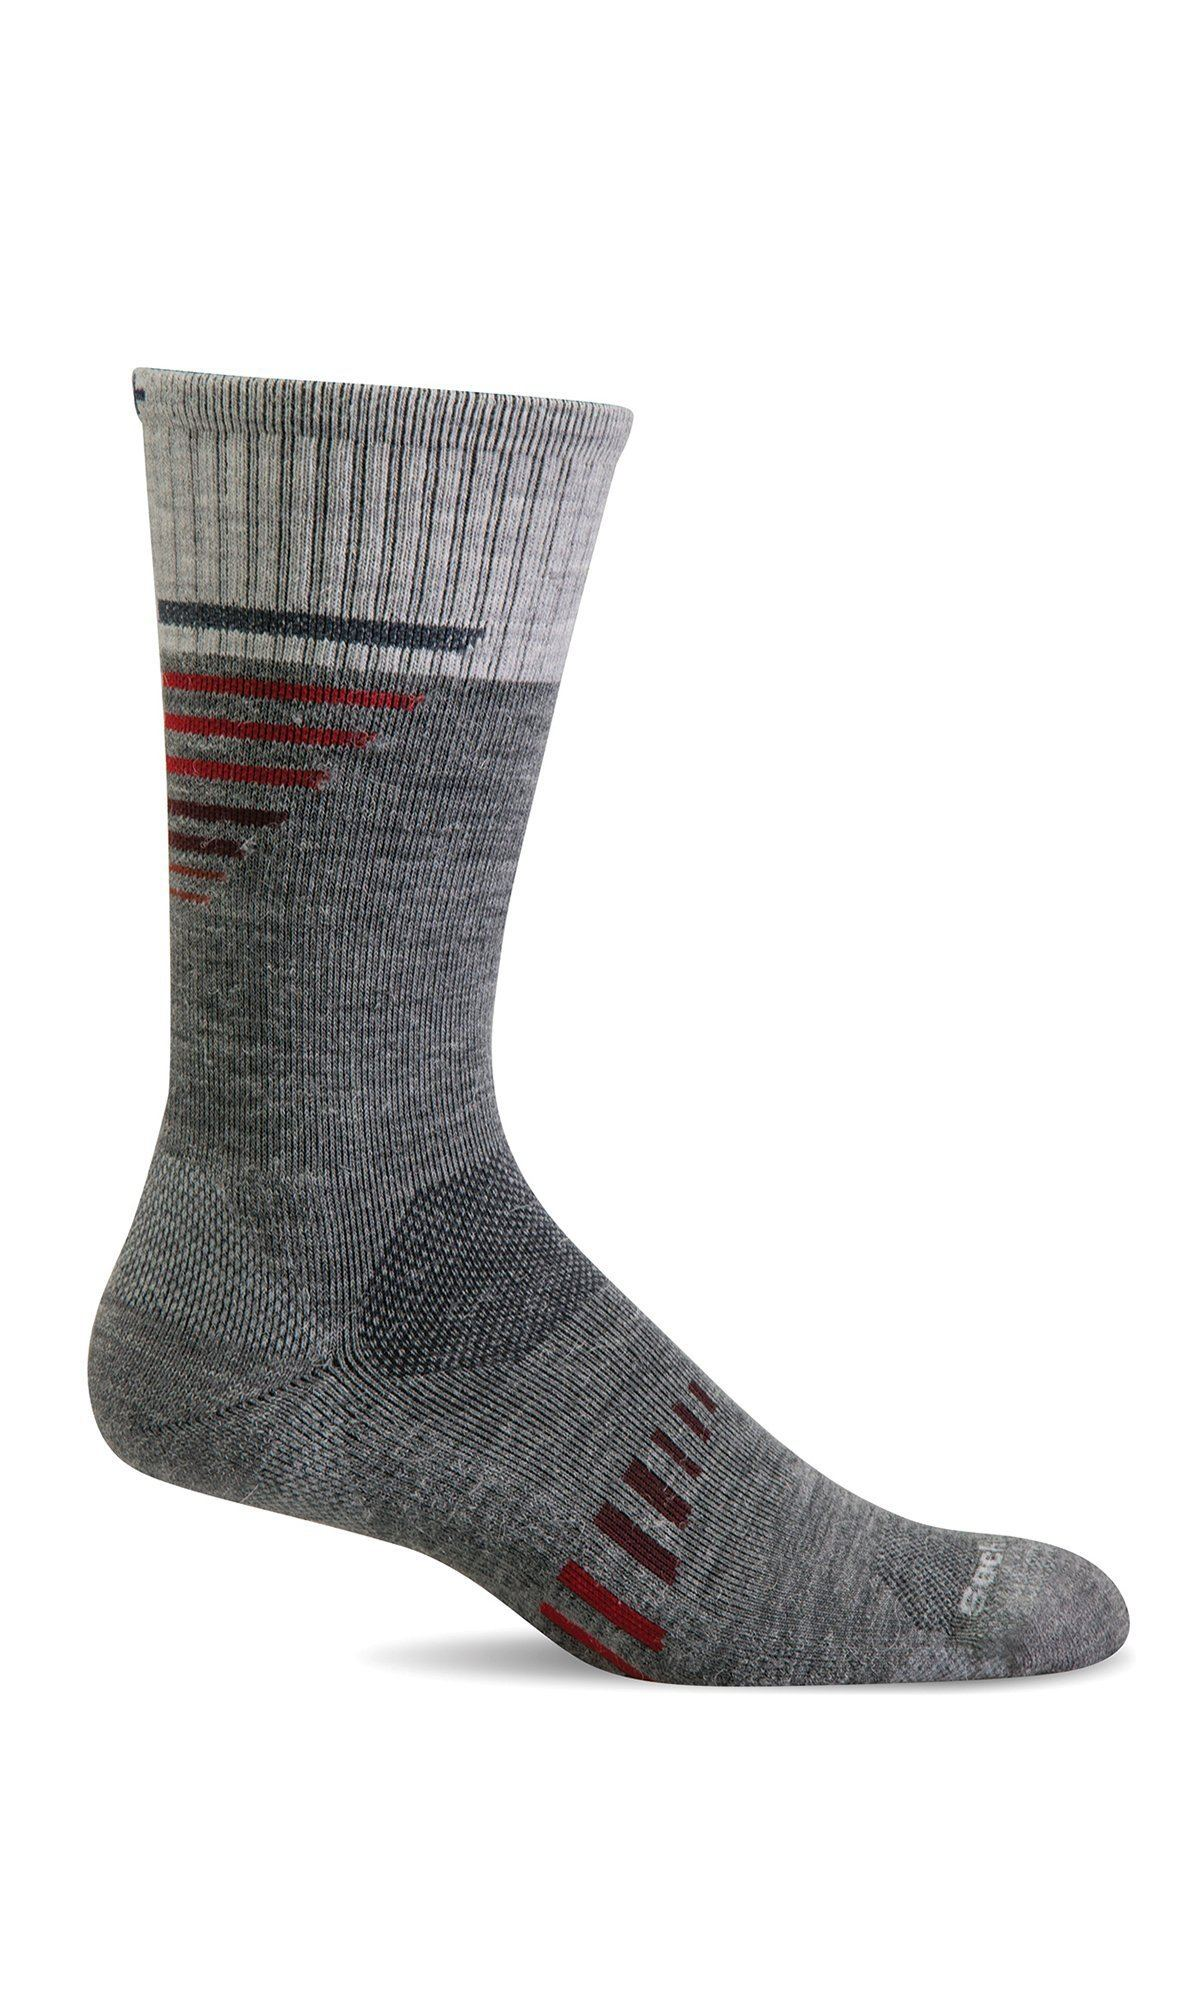 Sockwell - Ascend II Moderate Graduated Compression (15-20 mmHg) Crew Socks | Men's - Knock Your Socks Off